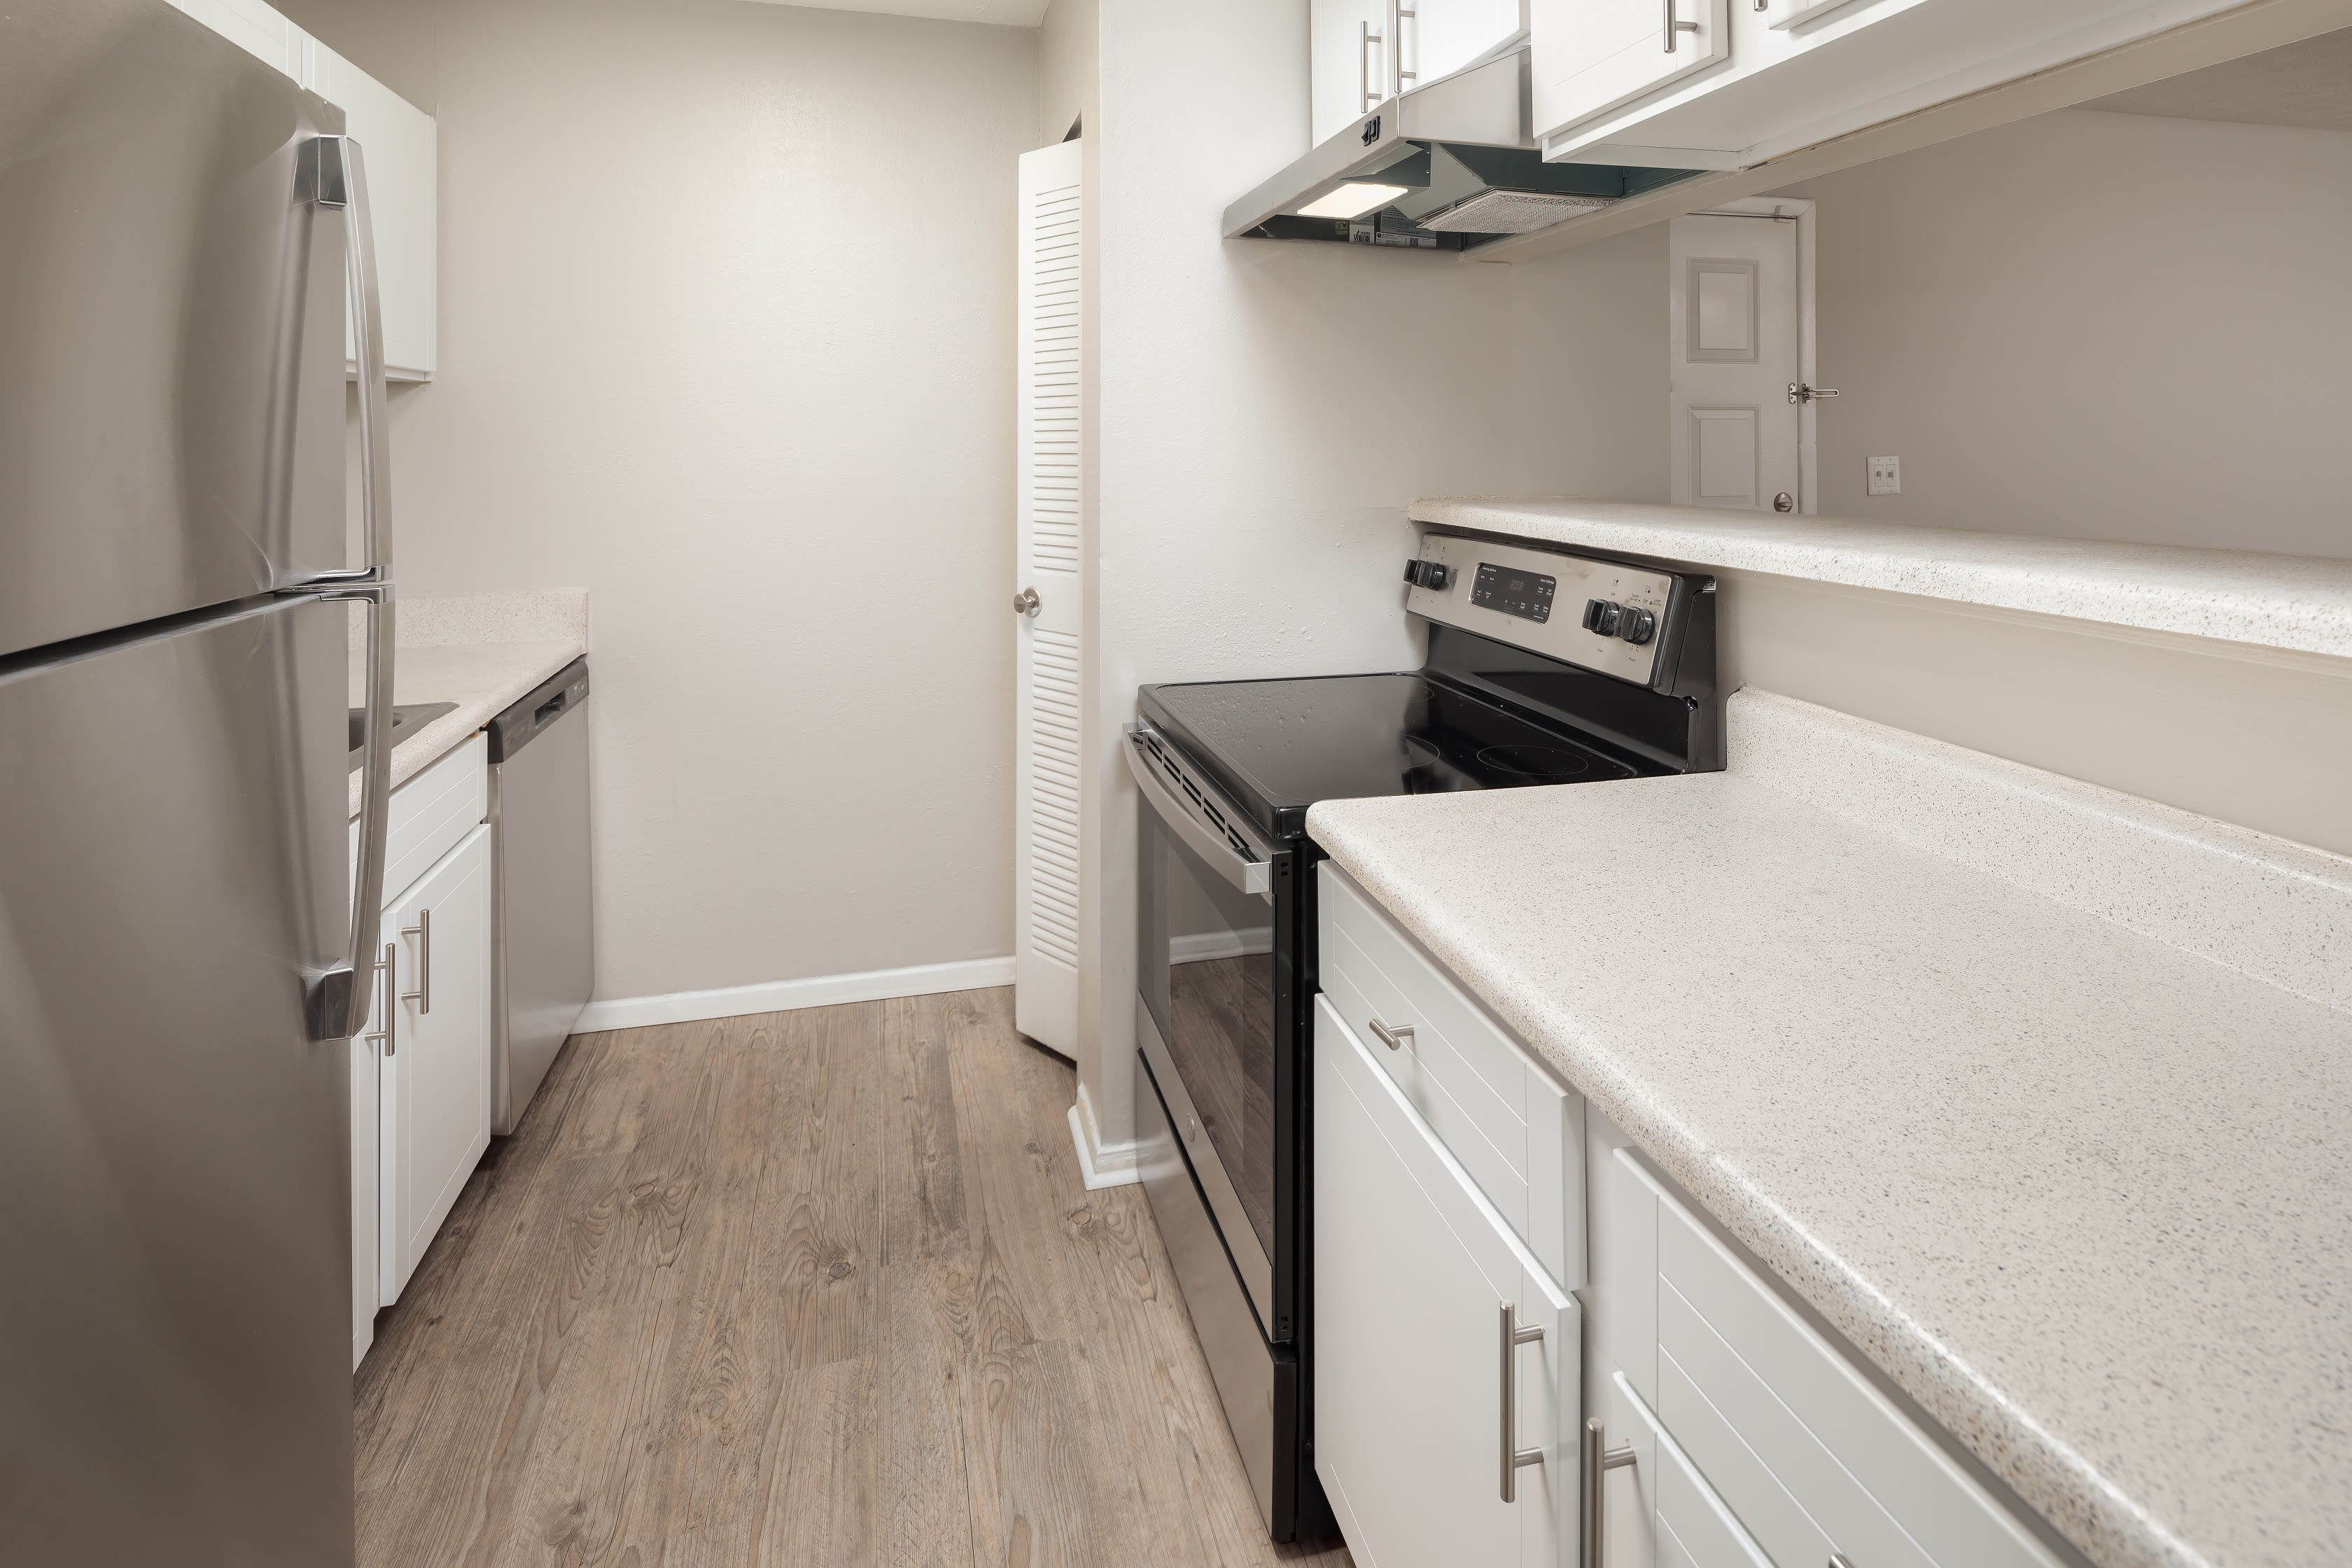 Updated appliances and countertops in a model home's kitchen at The Everette at East Cobb in Marietta, Georgia